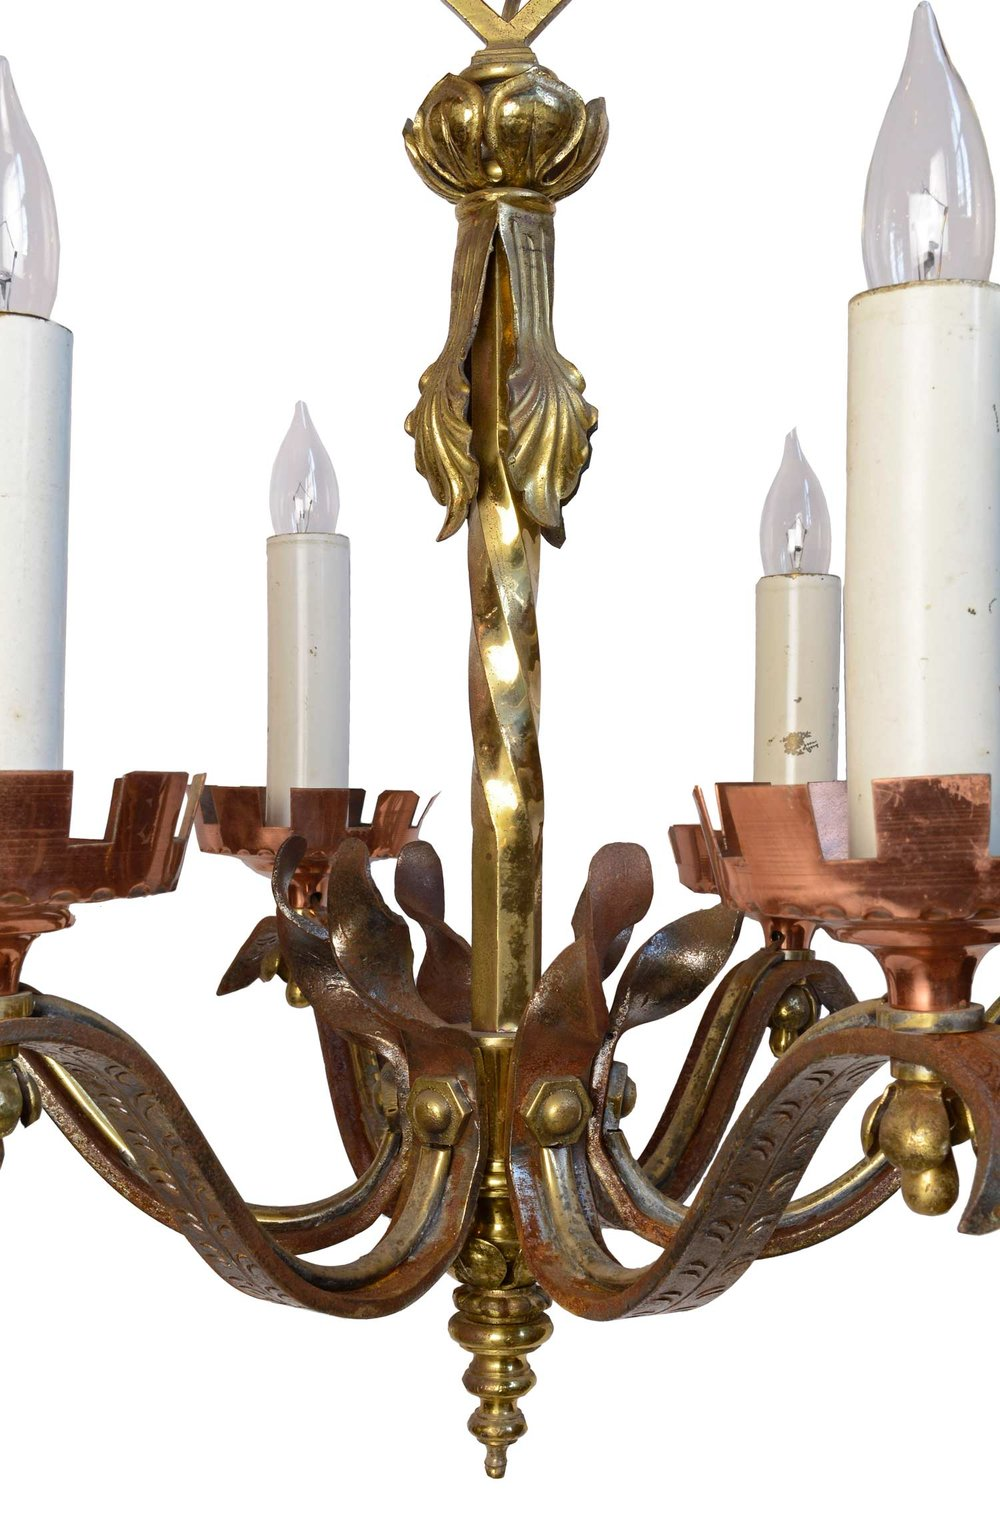 45832-6-candle-brass-and-copper-chandelier-post-detail.jpg